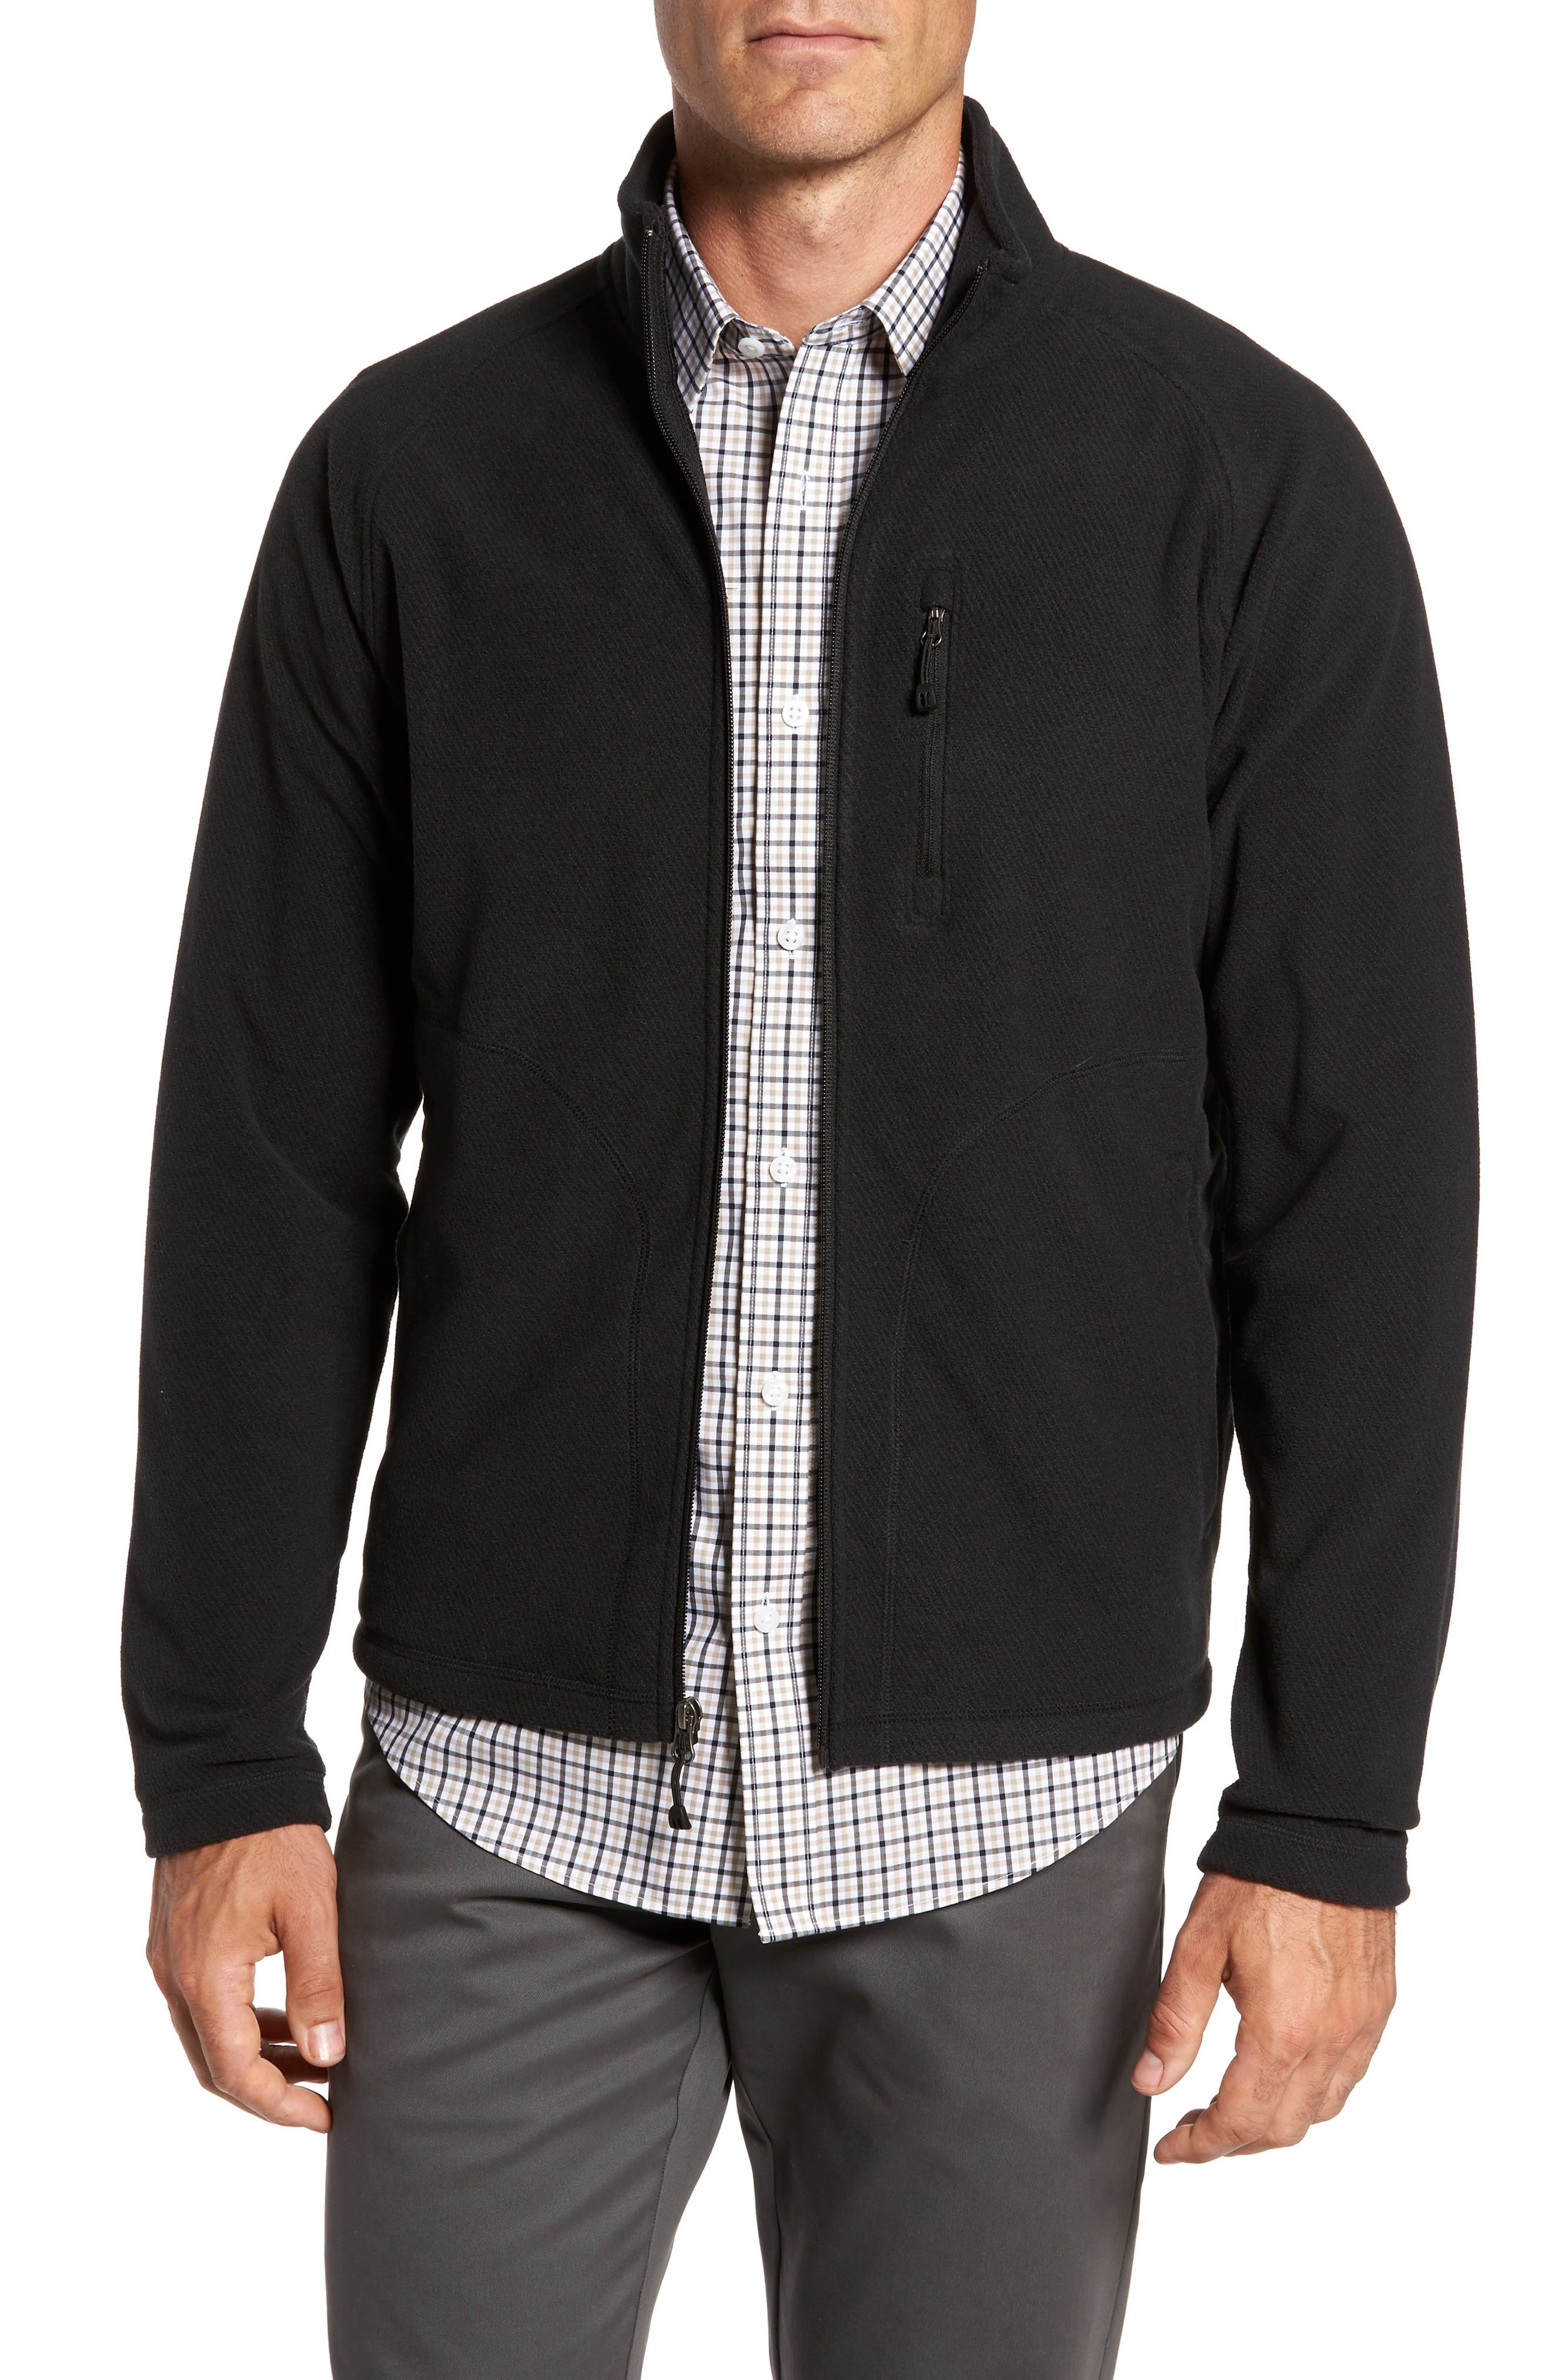 Nordstrom Men's Shop Polar Fleece Jacket